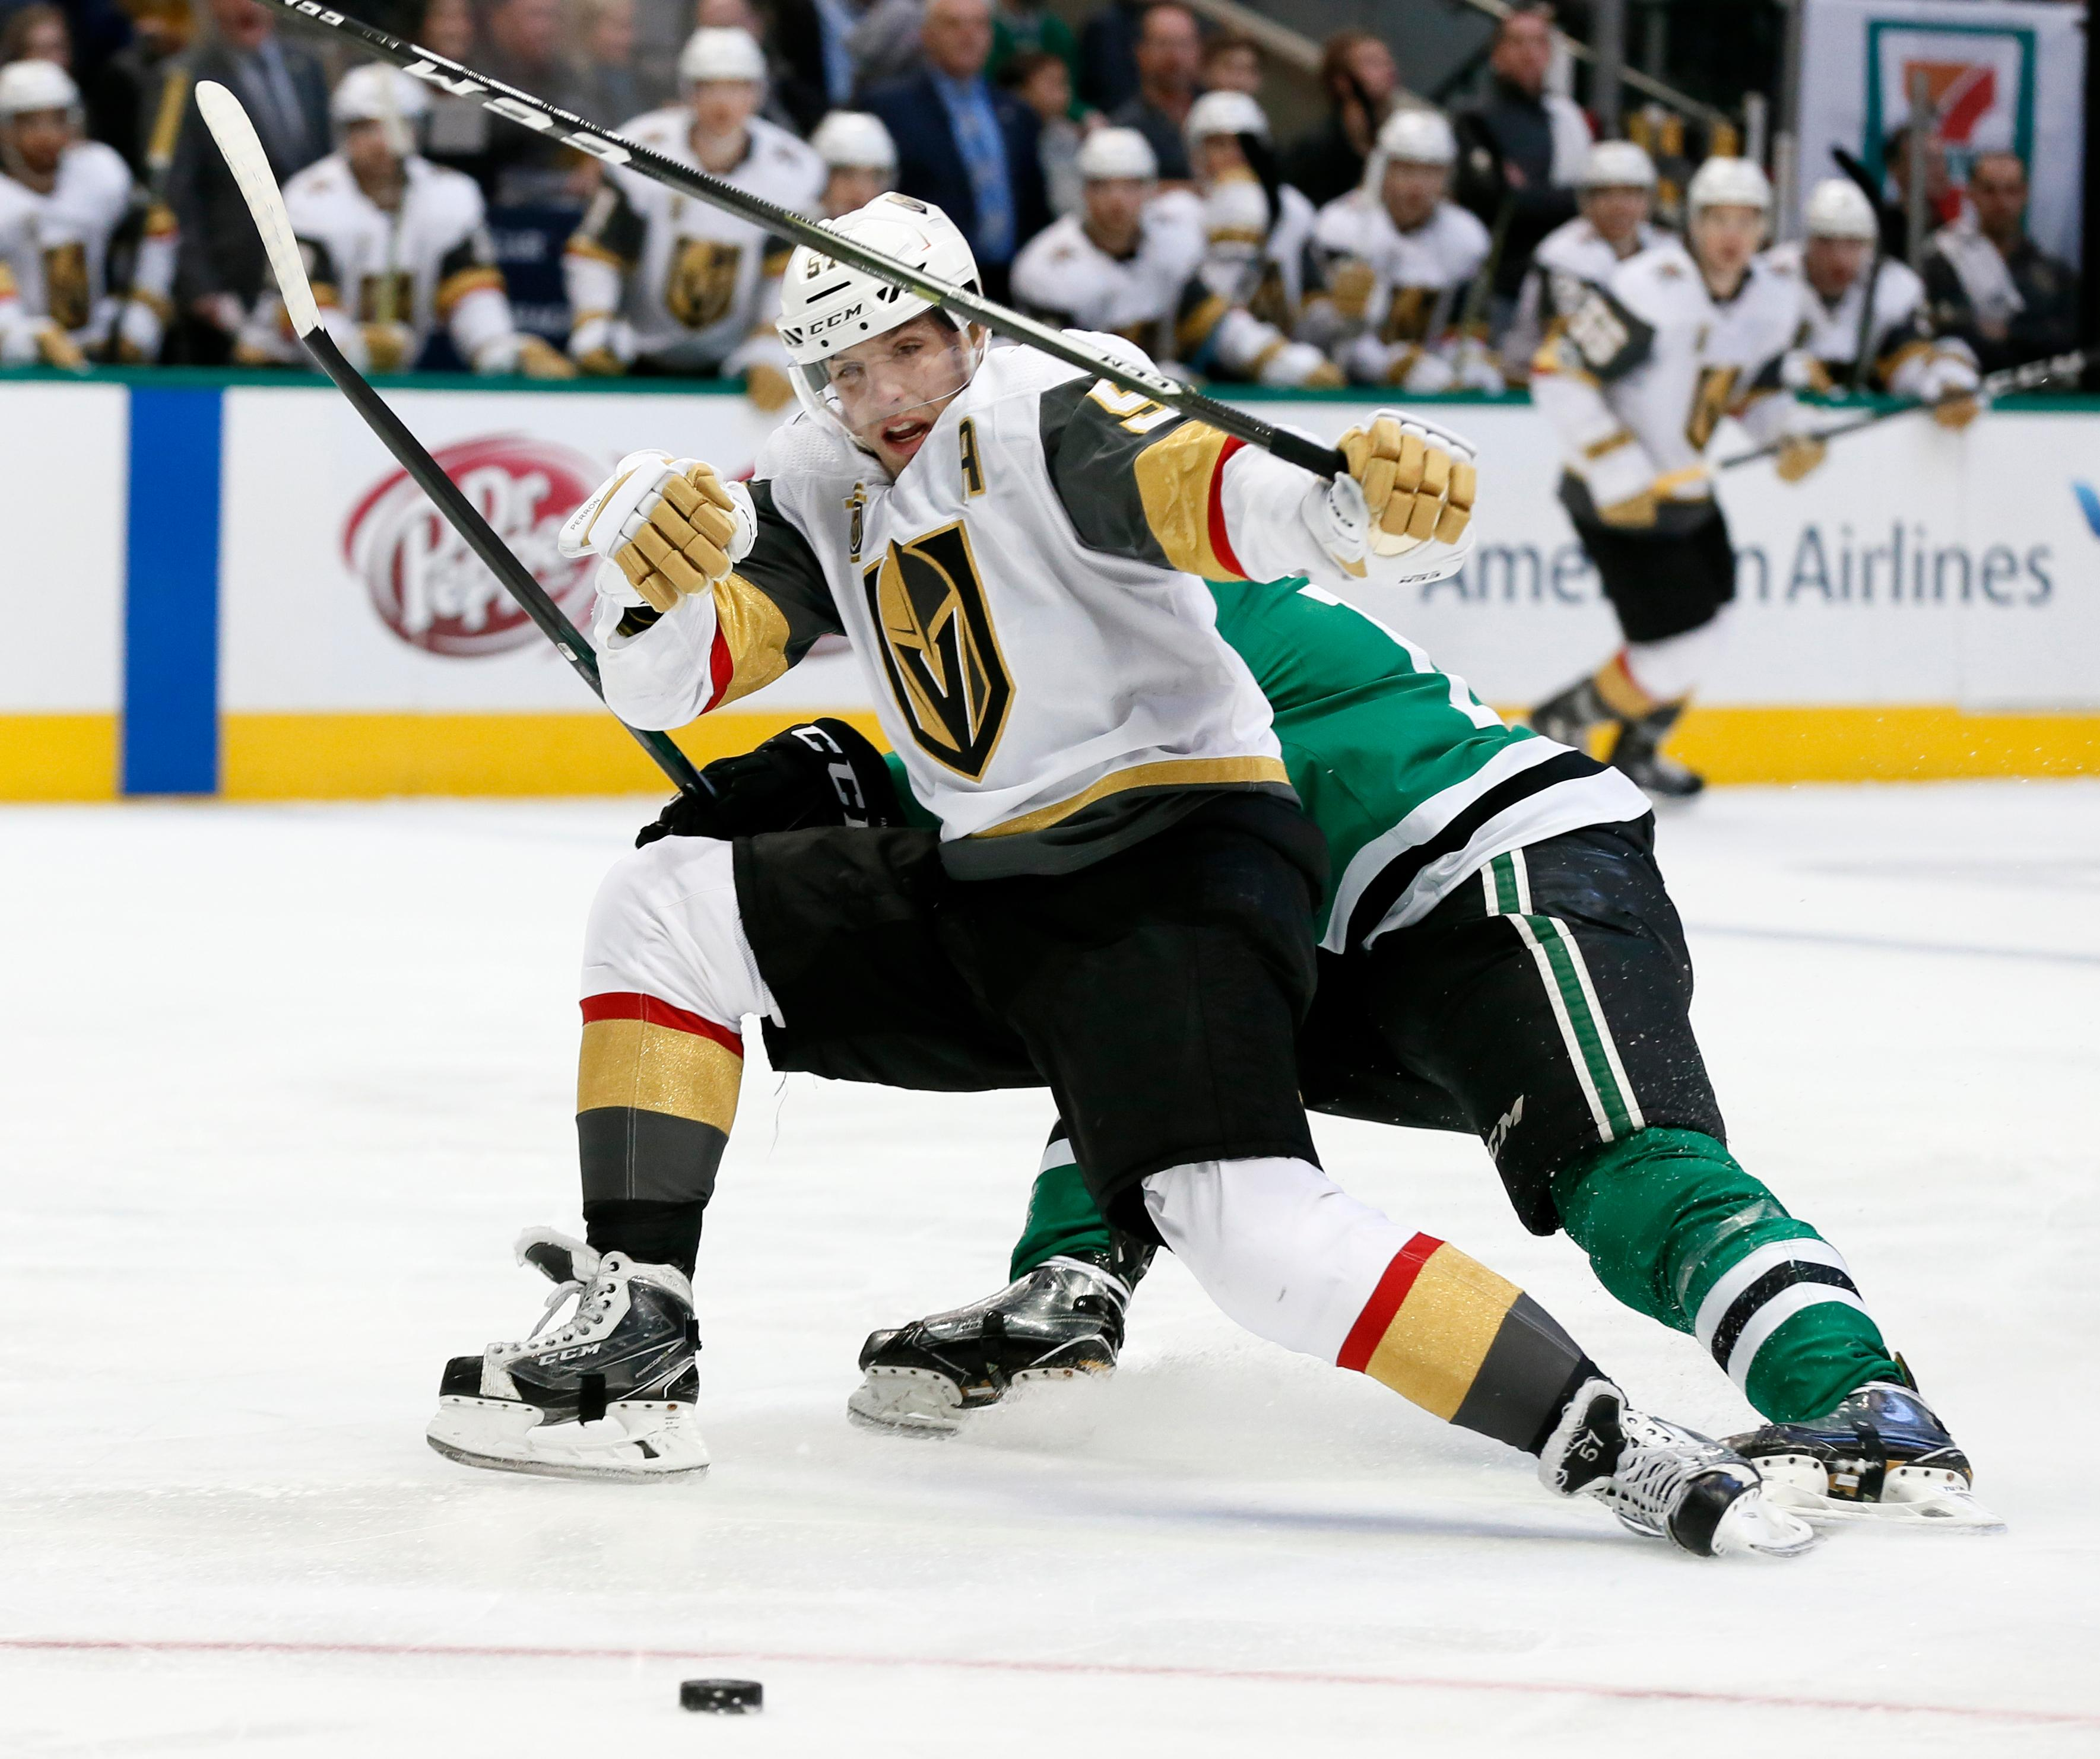 Vegas Golden Knights left wing David Perron (57) loses control of the puck after being hit by Dallas Stars' Radek Faksa during the first period of an NHL hockey game, Saturday, Dec. 9, 2017, in Dallas. (AP Photo/Tony Gutierrez)